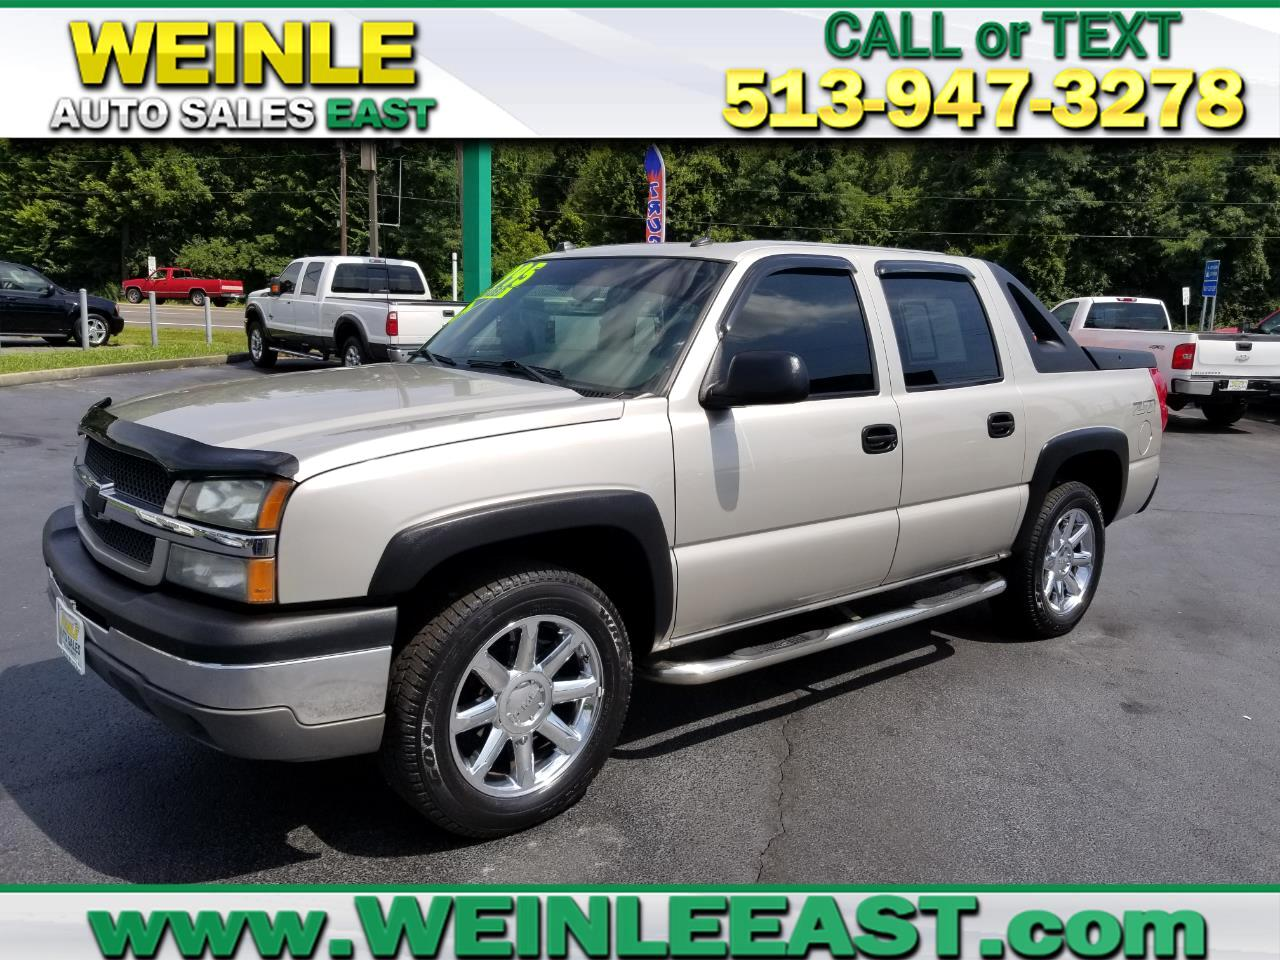 2004 Chevrolet Avalanche 4WD Z71 20' DENALI WHEELS